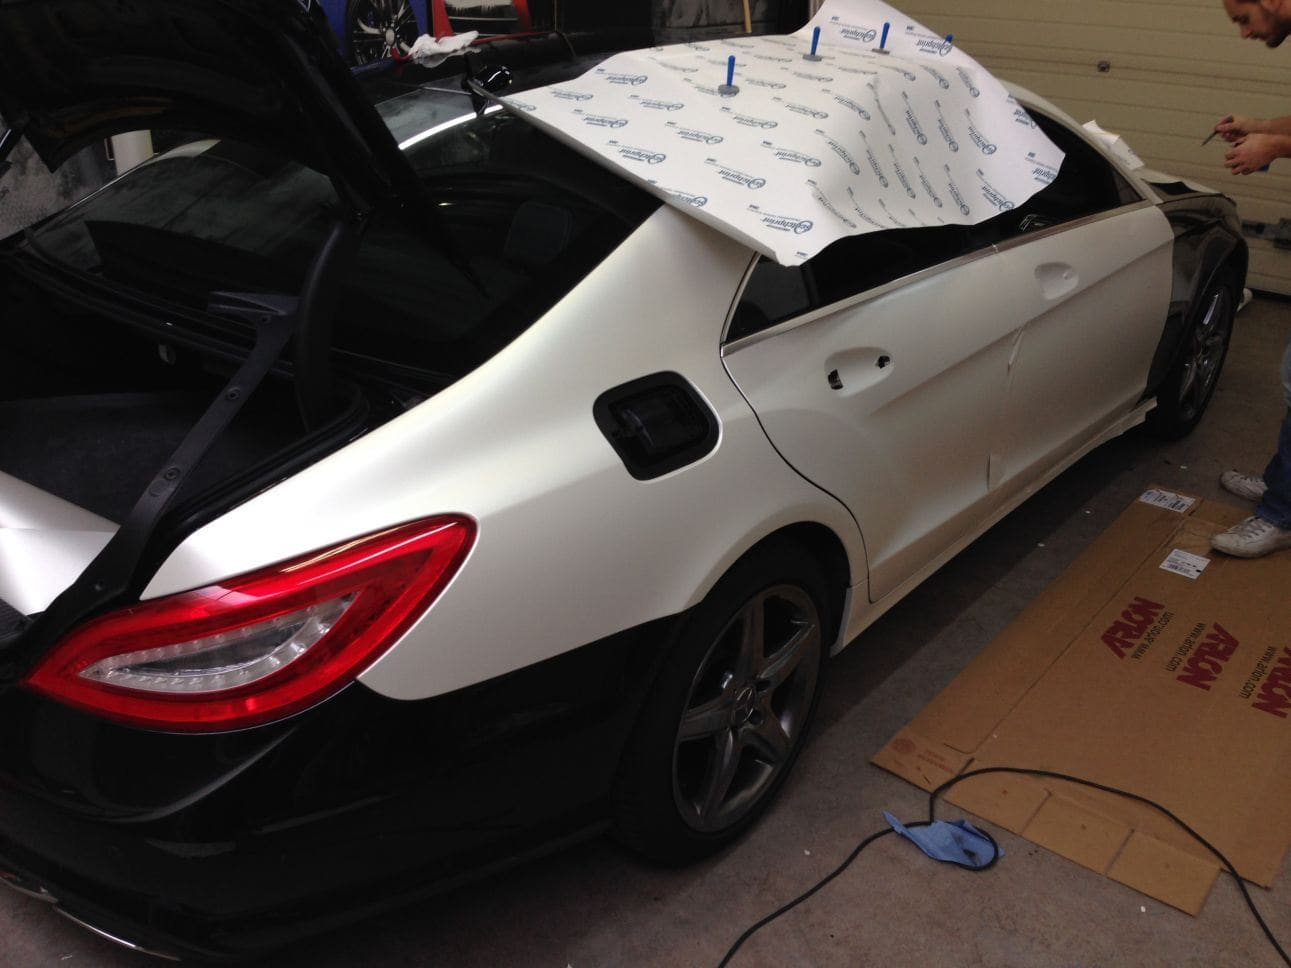 Mercedes CLS met White Satin Pearl Wrap, Carwrapping door Wrapmyride.nu Foto-nr:6177, ©2021